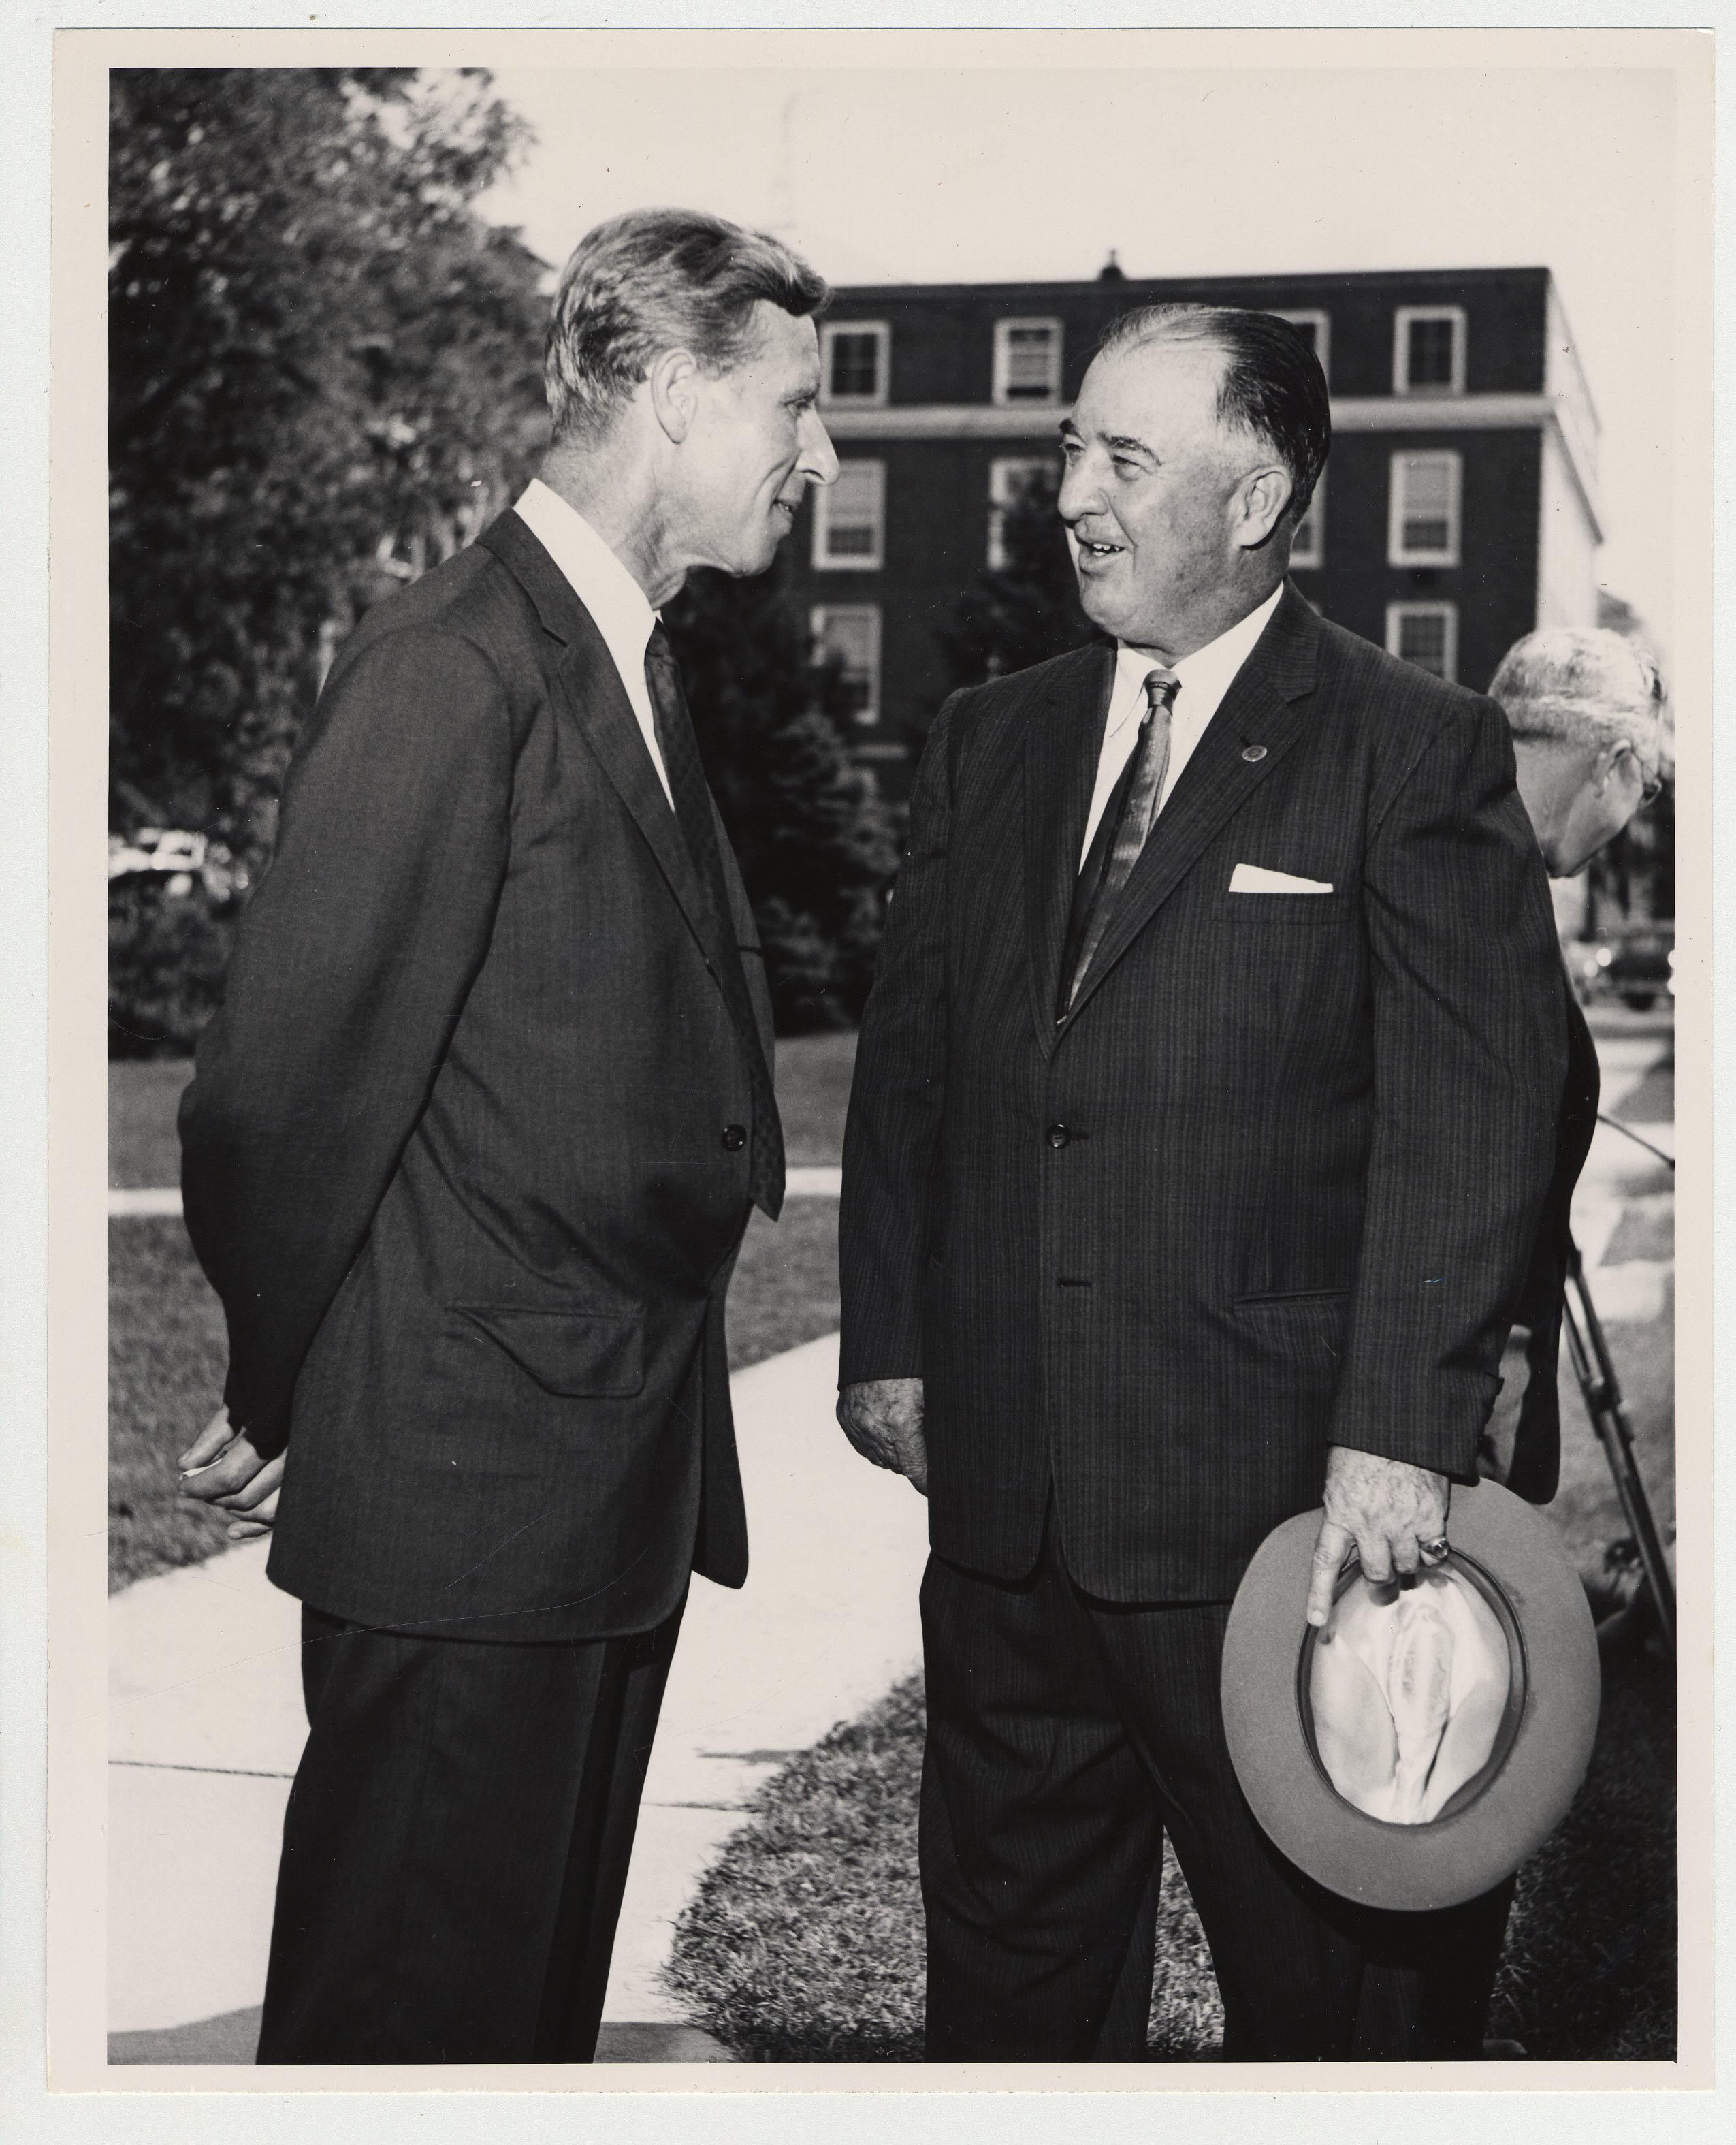 Former Governor A B Happy Chandler Talk With An Unidentified Man